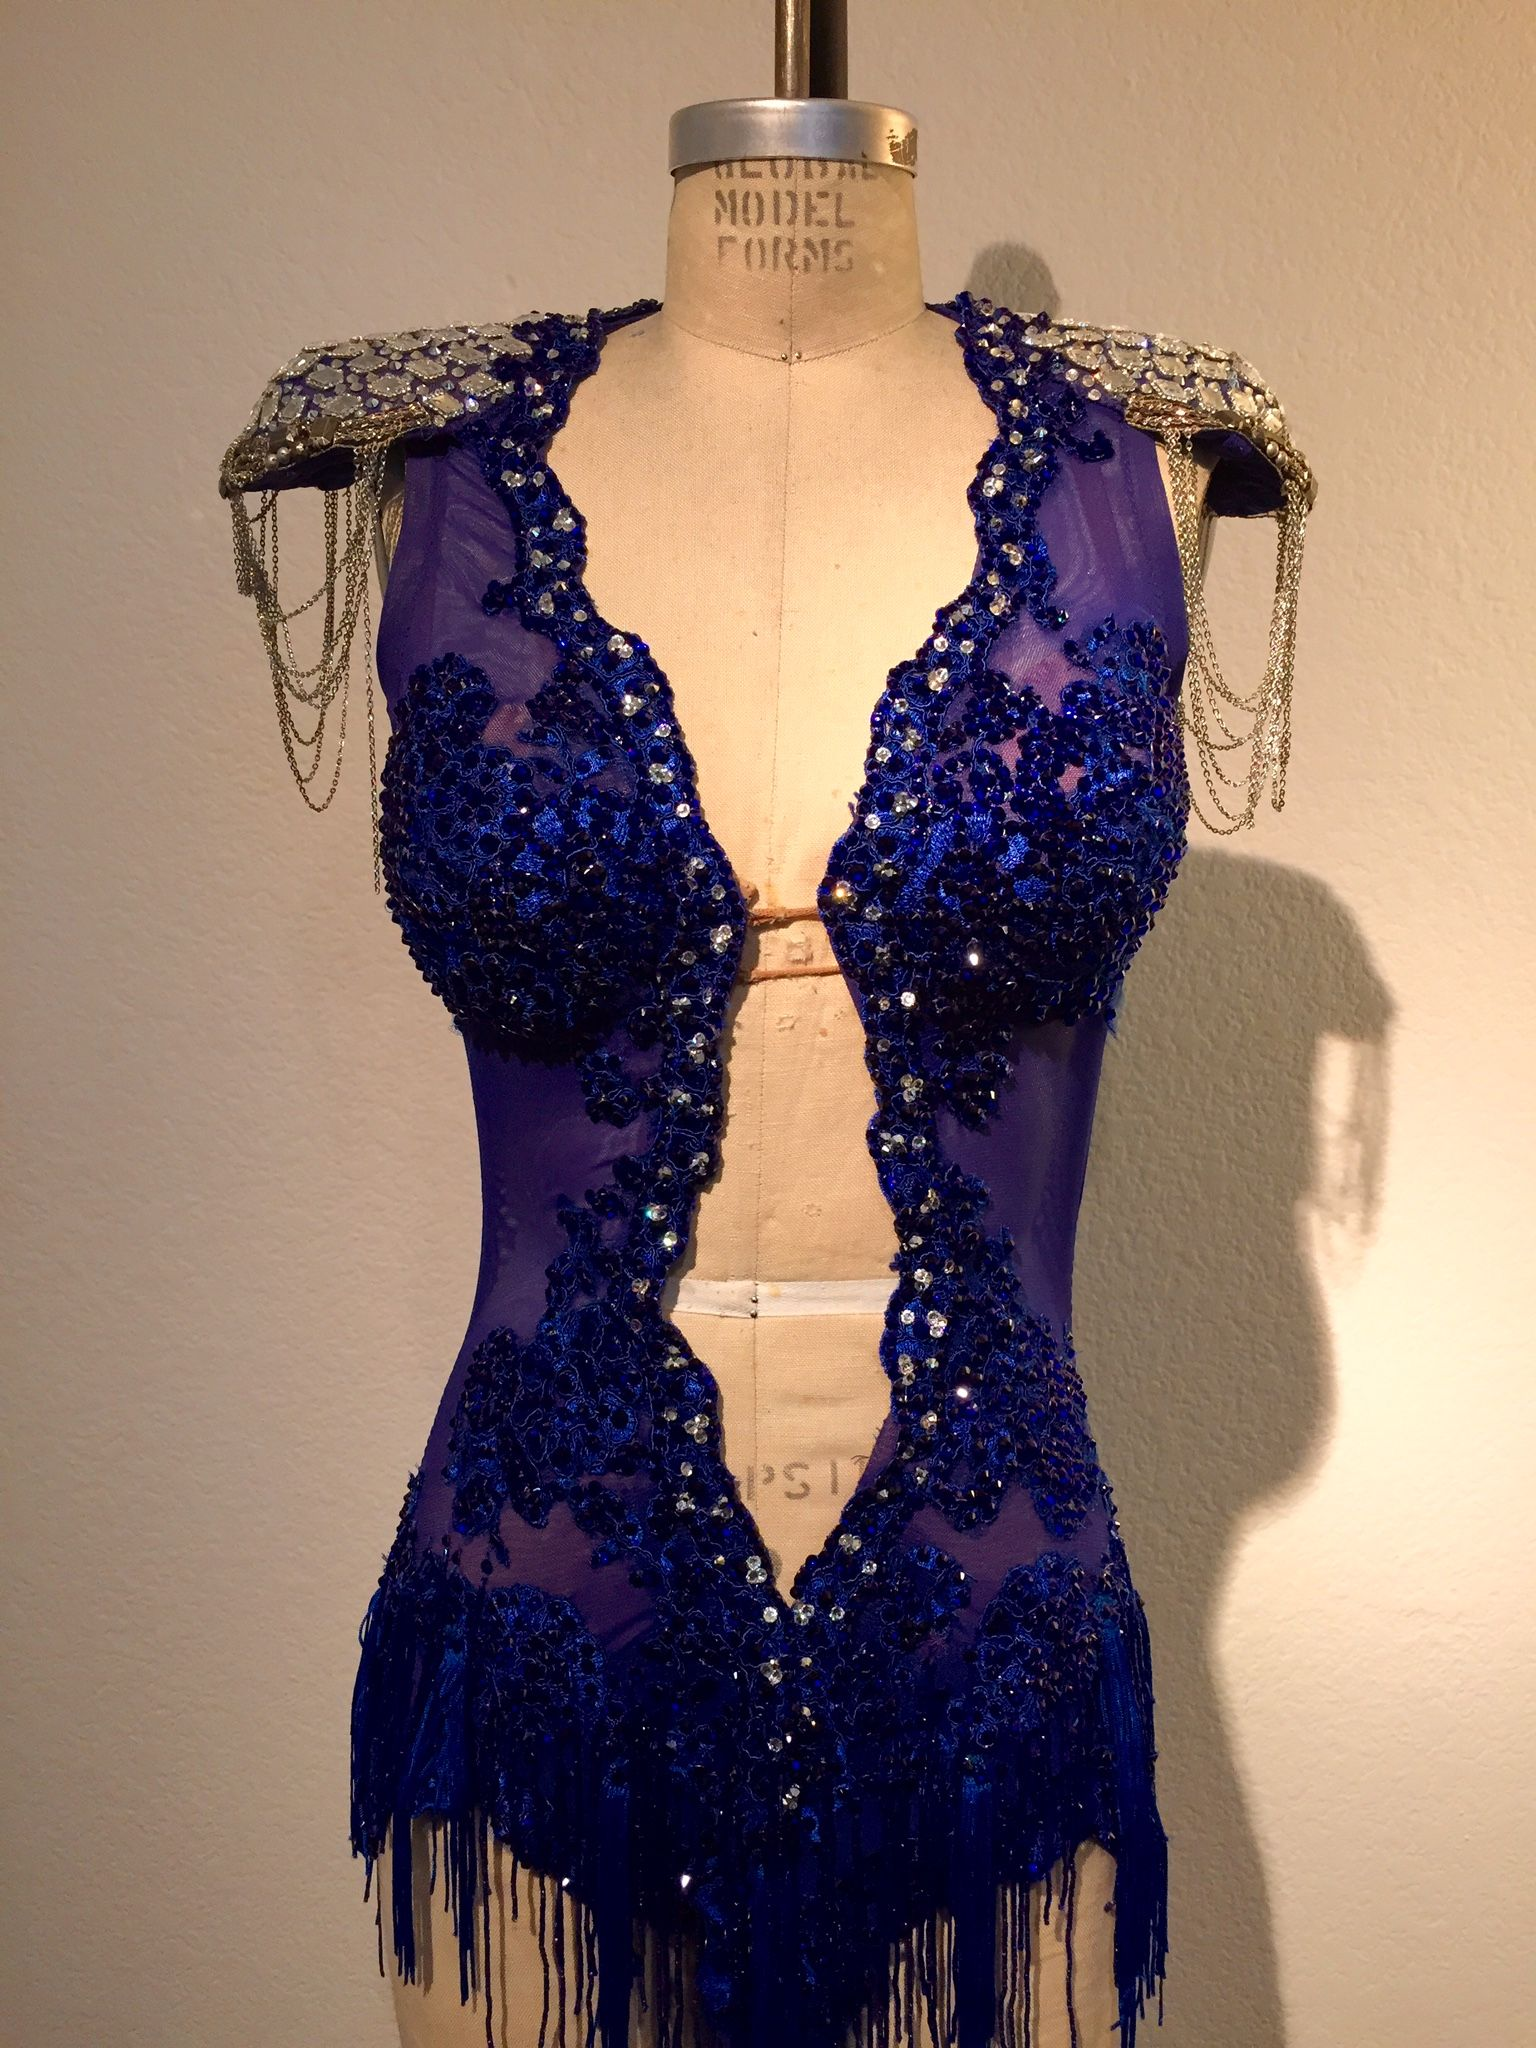 Who Do You Think Will Be Wearing This Purple Costume On Dancing With The  Stars?